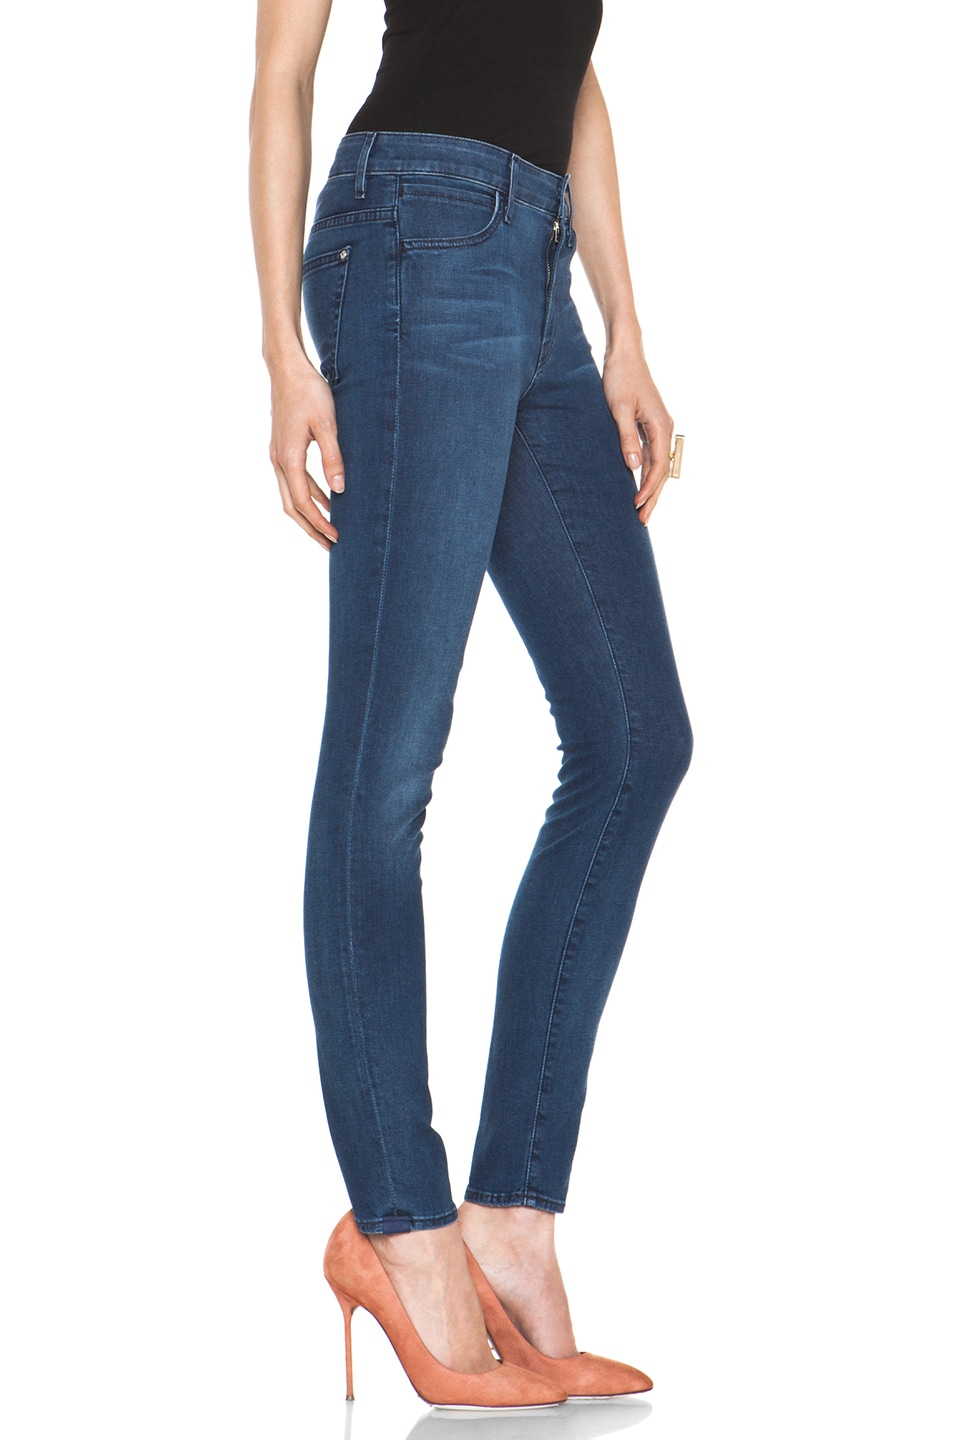 Image 3 of Koral November Twelve Coated High Rise Skinny in 12 Months